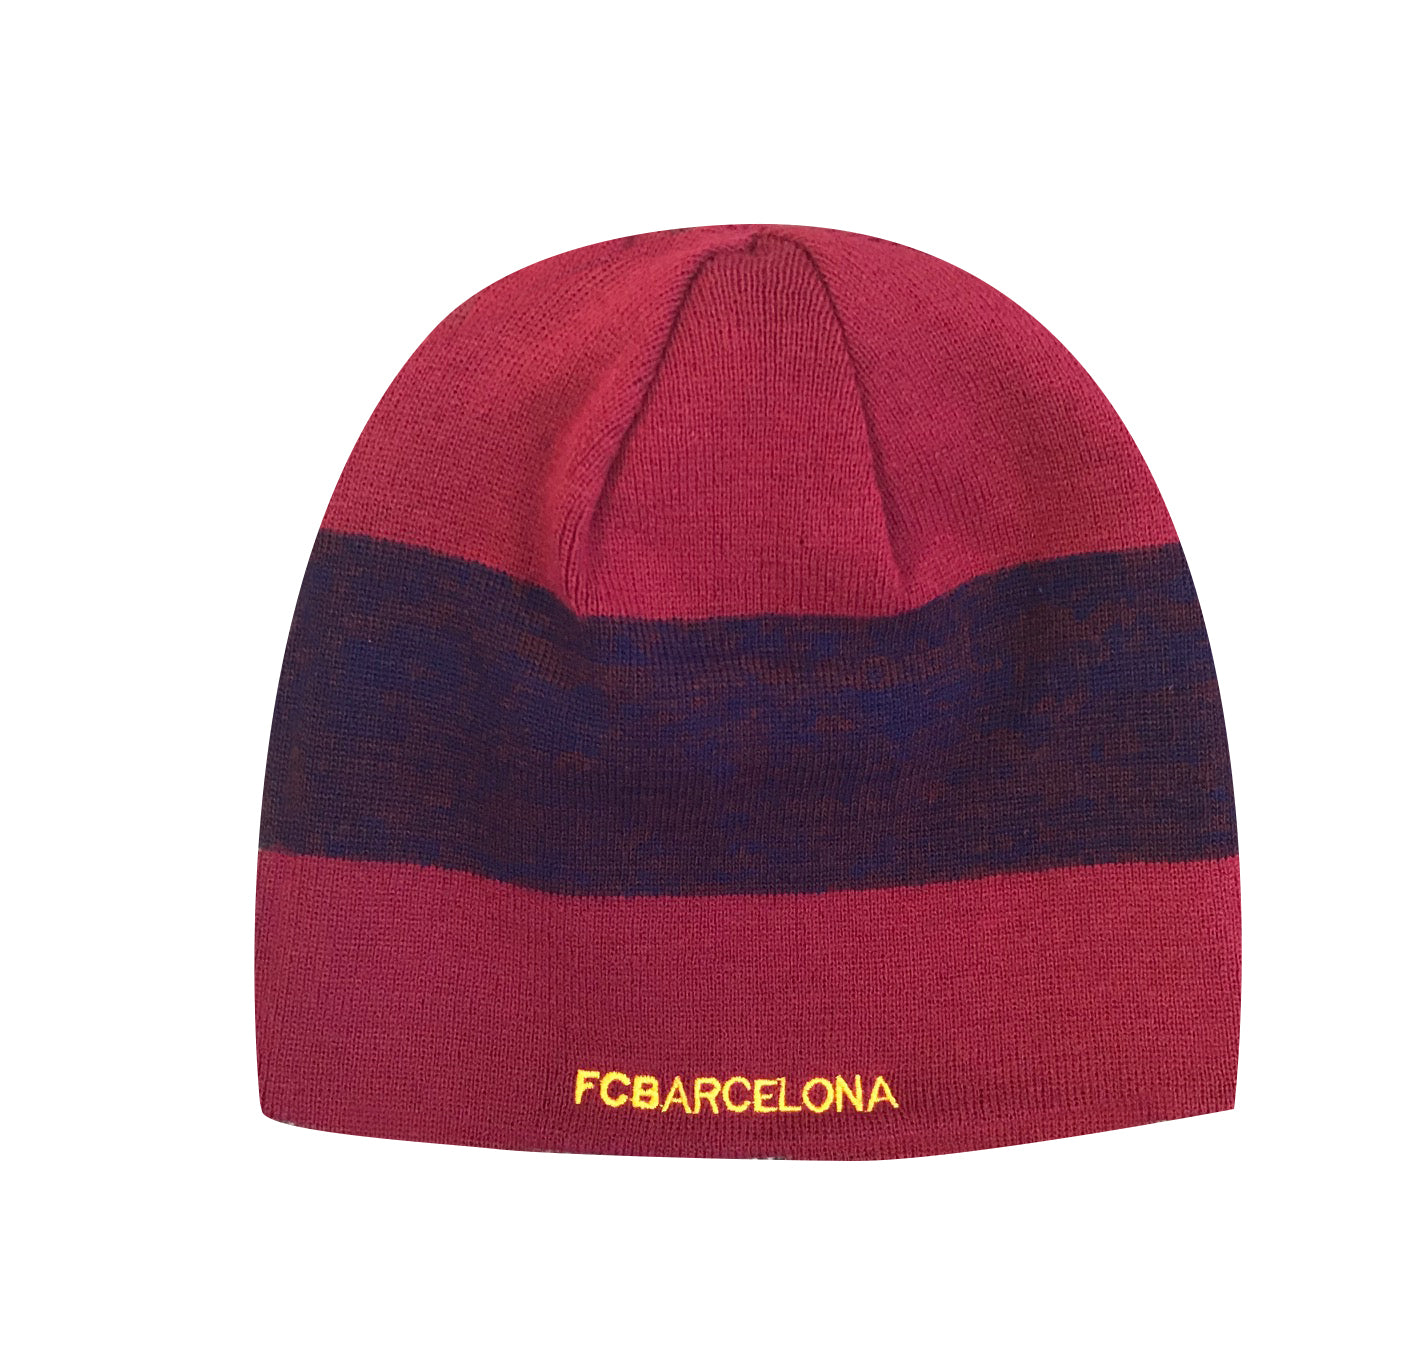 FC Barcelona Reversible Beanie by Icon Sports